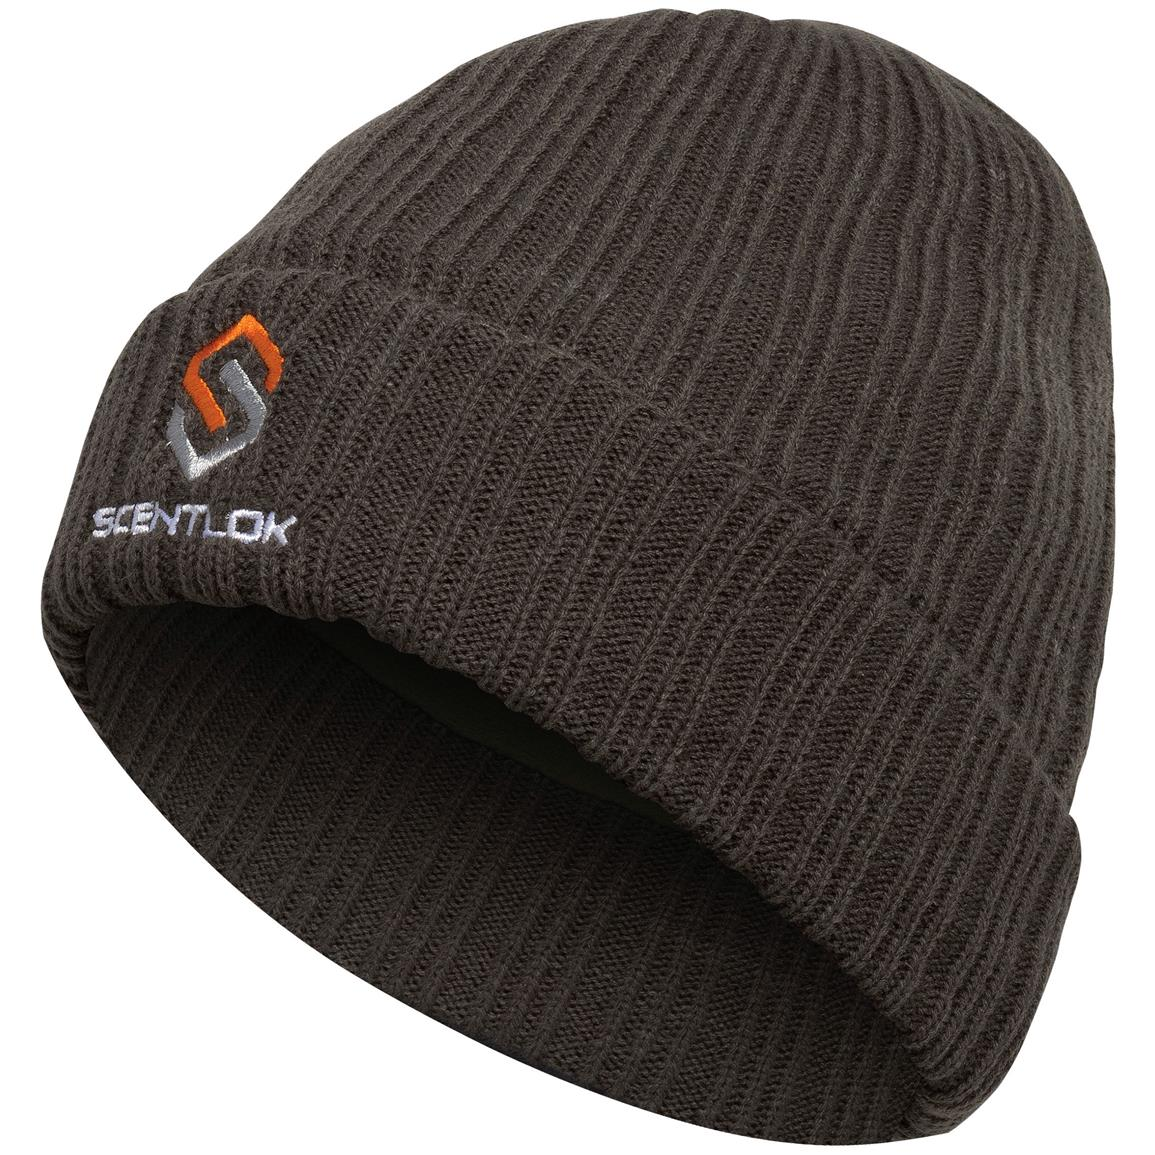 Scentlok Carbon Alloy Knit Beanie, Charcoal